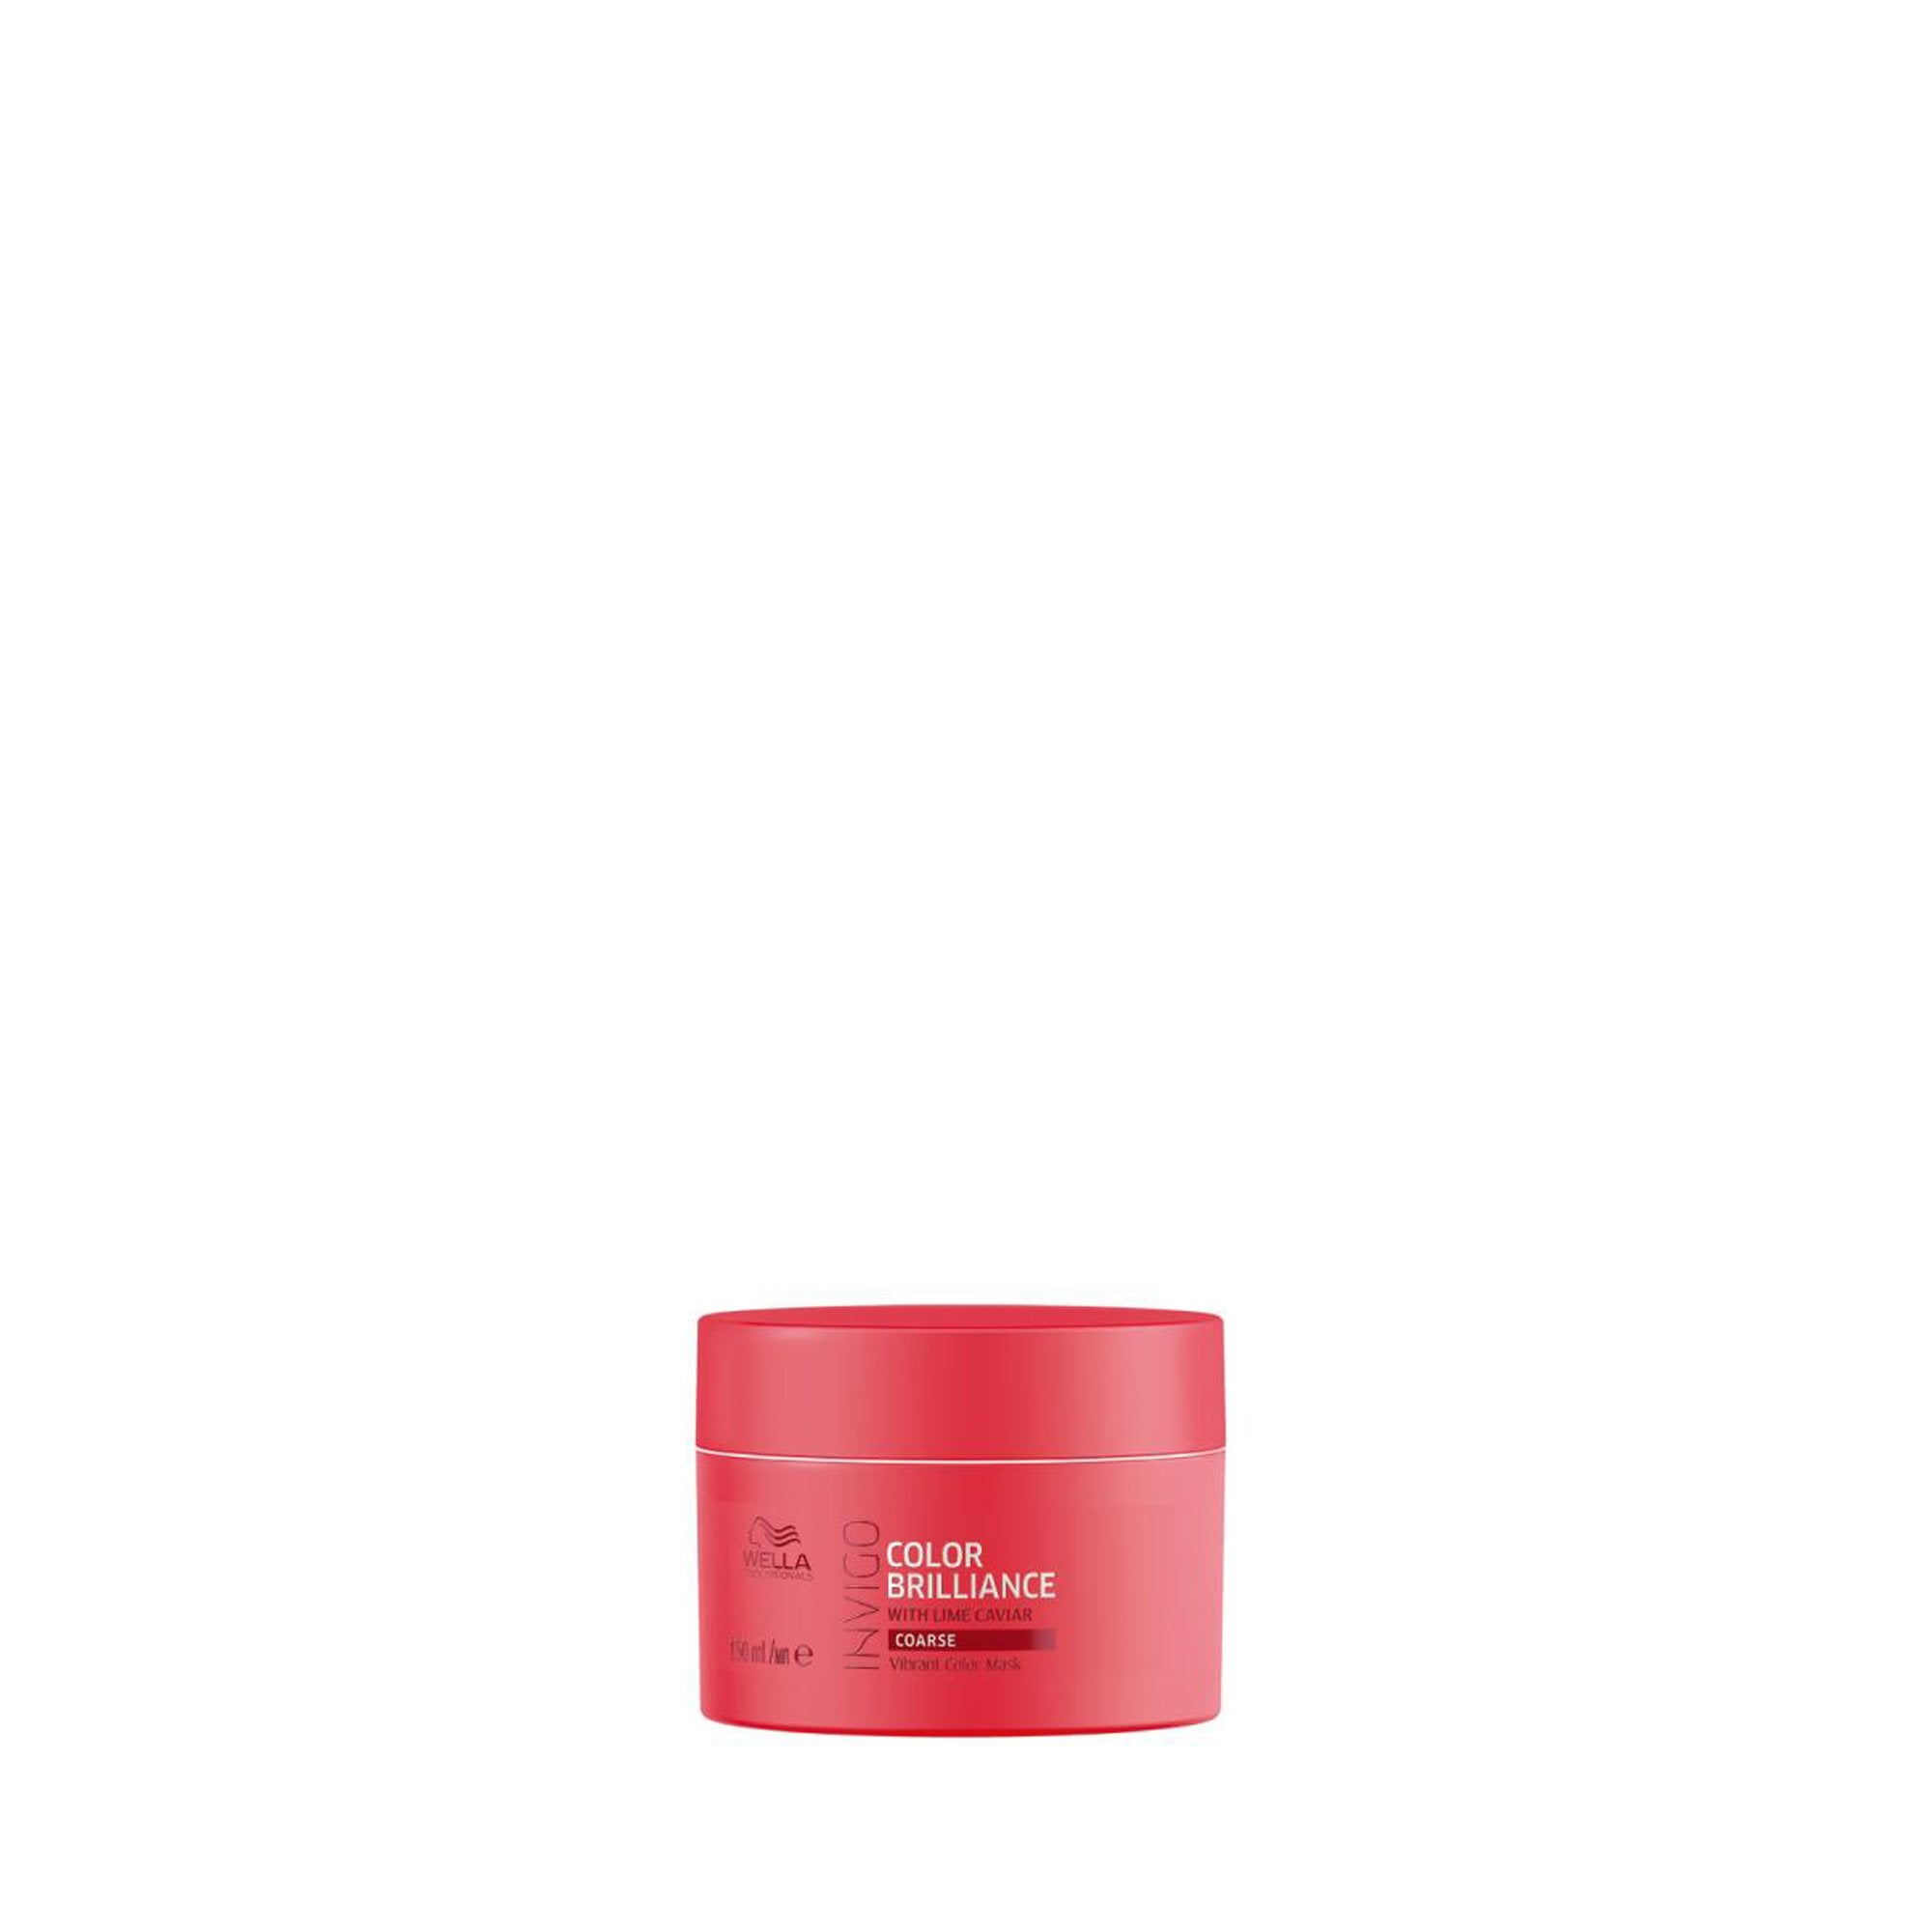 Imagen del producto Invigo Color Brilliance Mask Coarse 150ml Lime Caviar | de WELLA